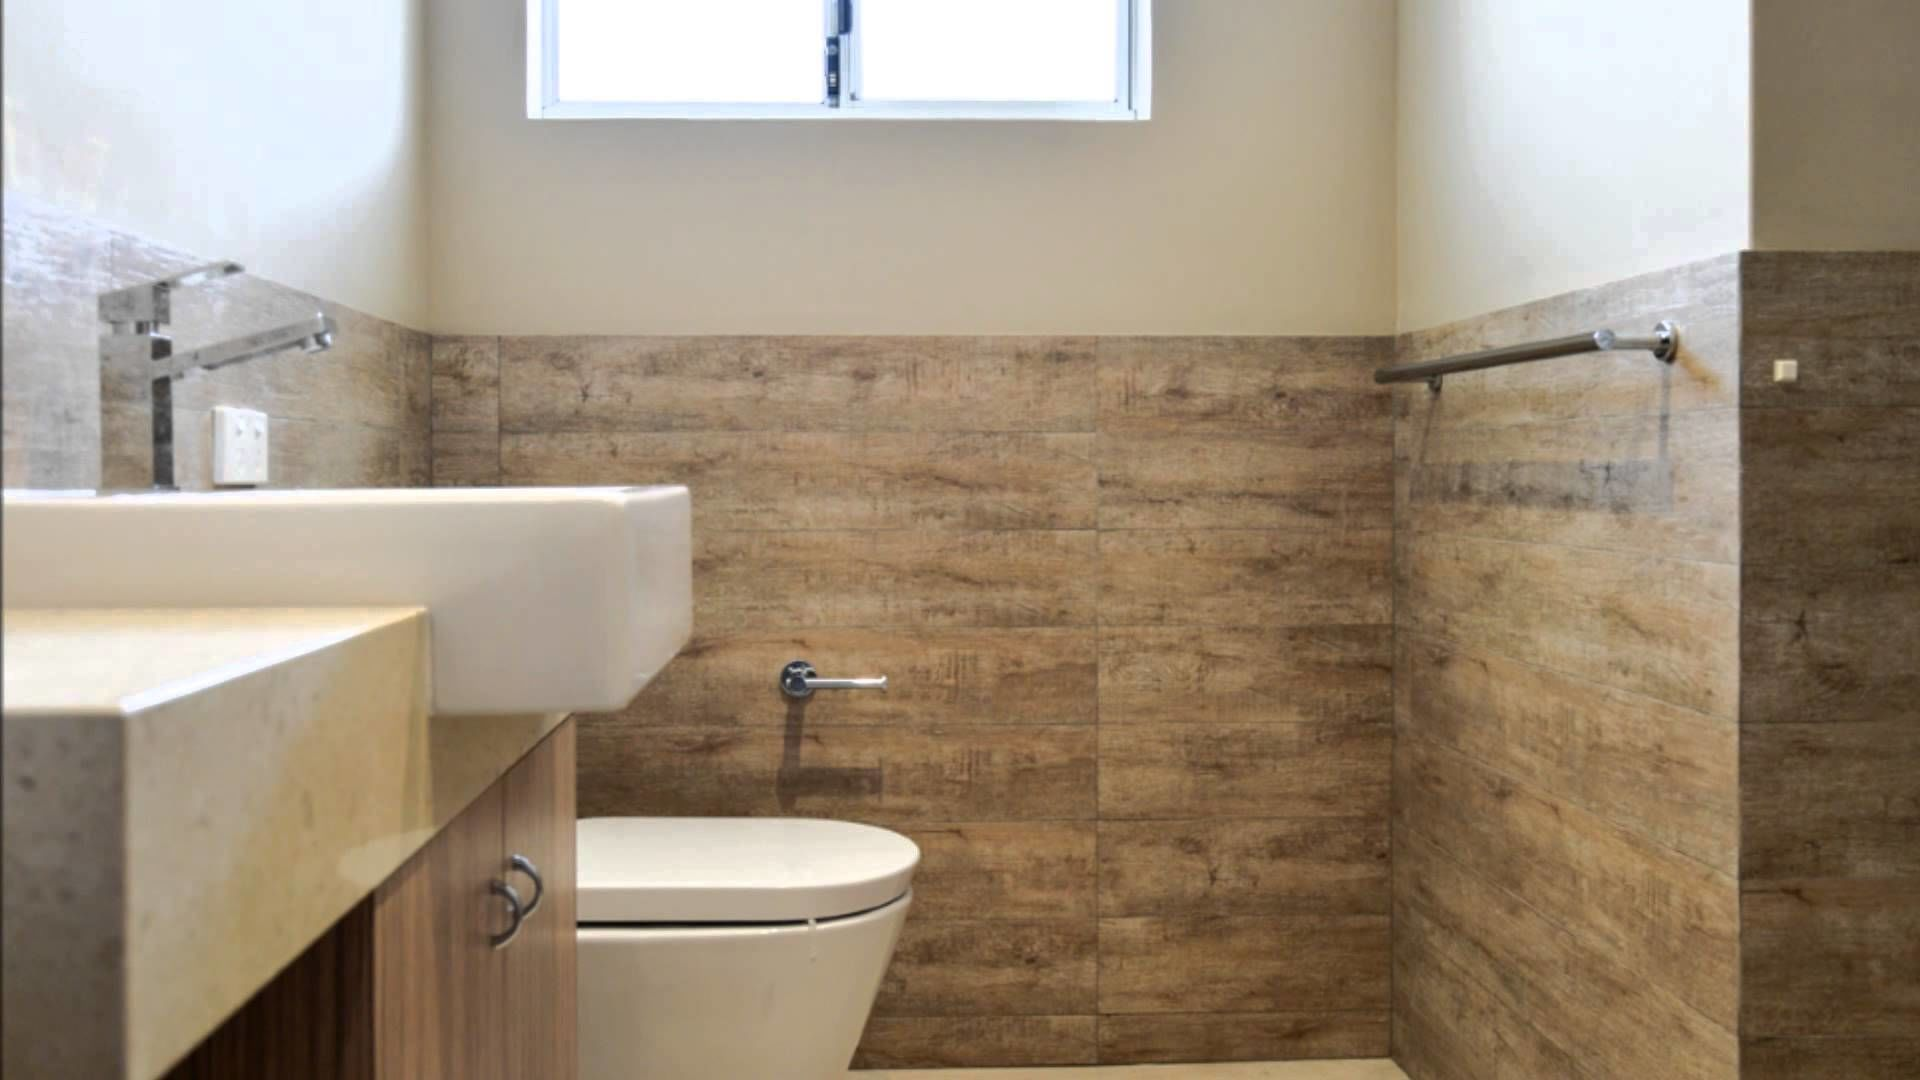 Bathroom Remodeling At The Home Depot: Awesome Home Depot Bathroom Renovations Architecture